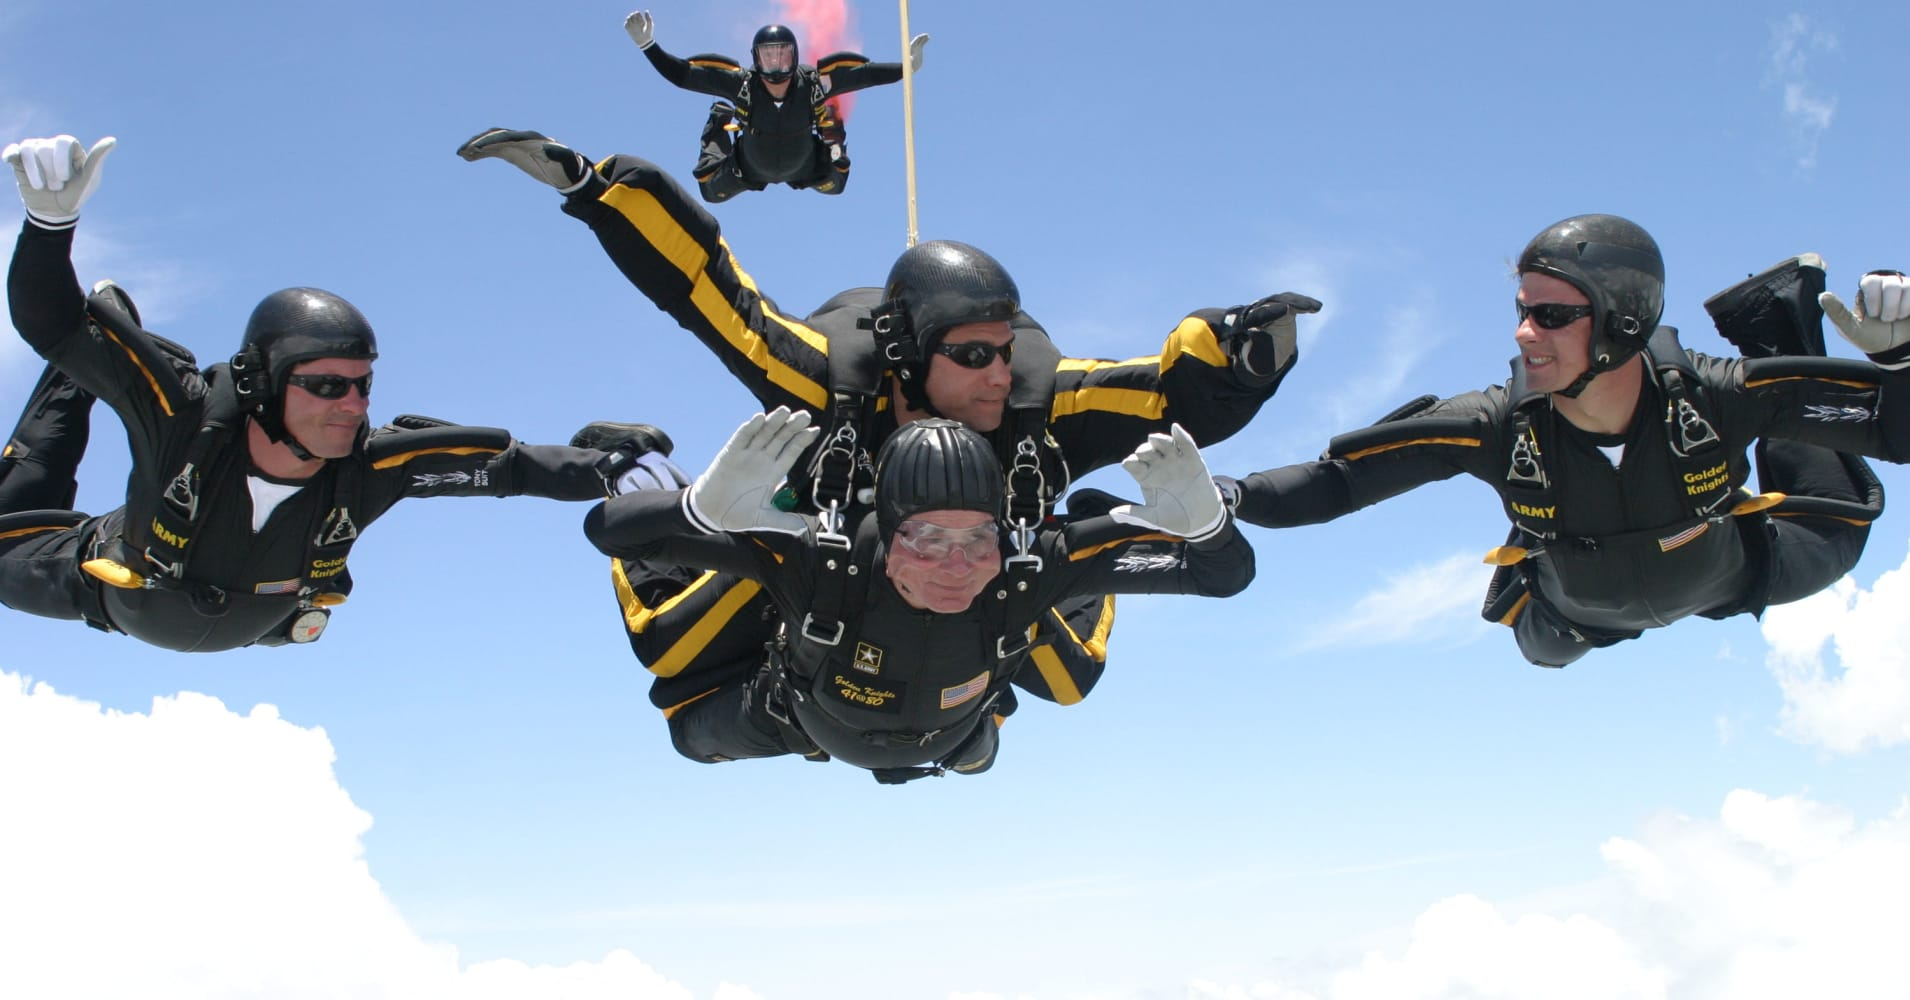 Celebrating his 80th birthday, Bush (C, bottom) skydives in tandem with Army Sgt. Bryan Schnell on June 13, 2004, over the Bush Presidential Library in College Station, Texas.